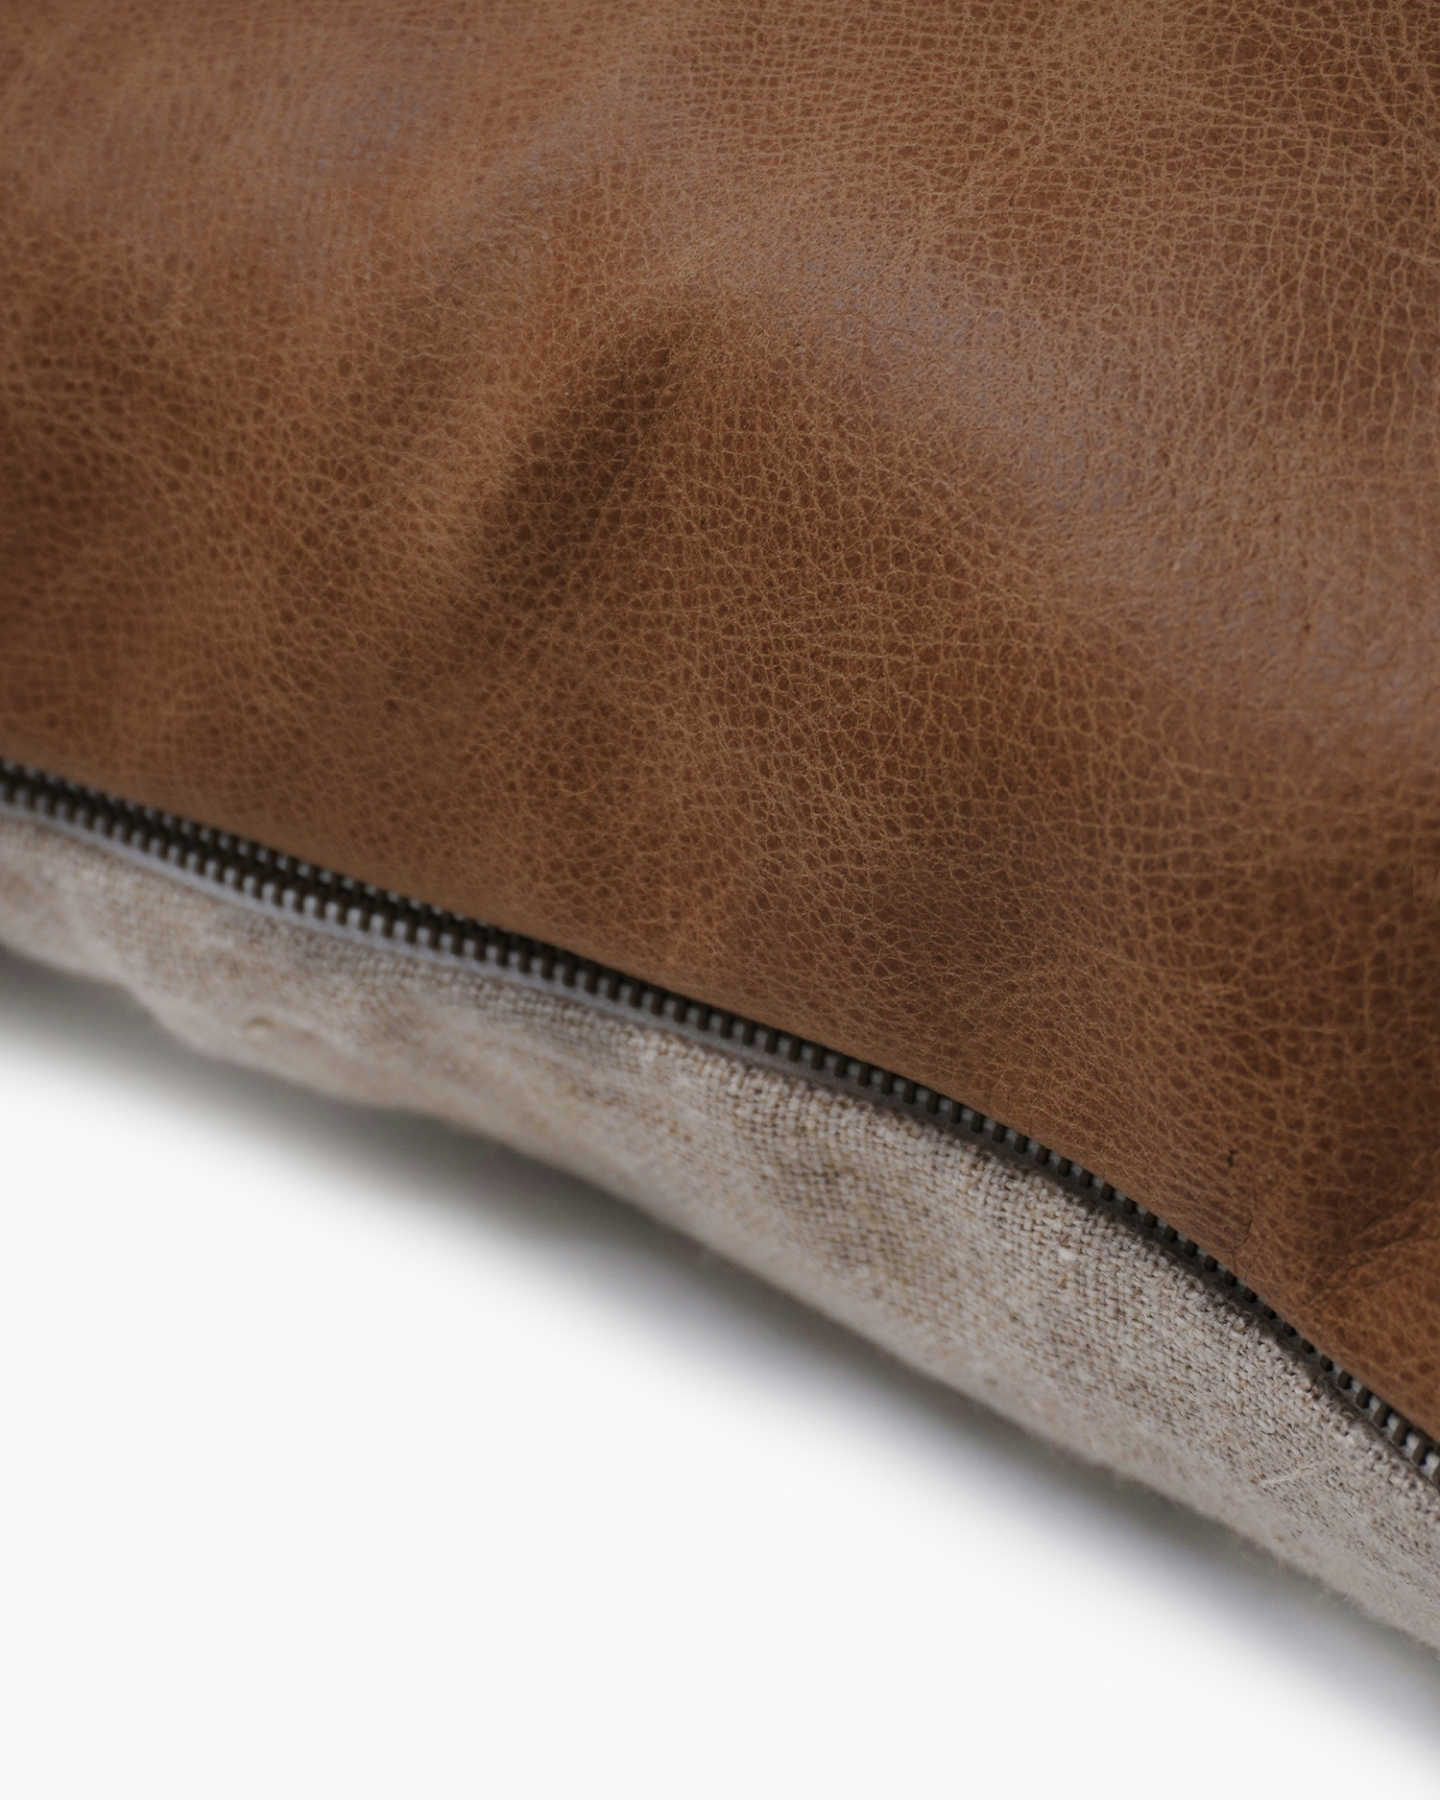 Luxe Leather Pillow Cover - Coco - 1